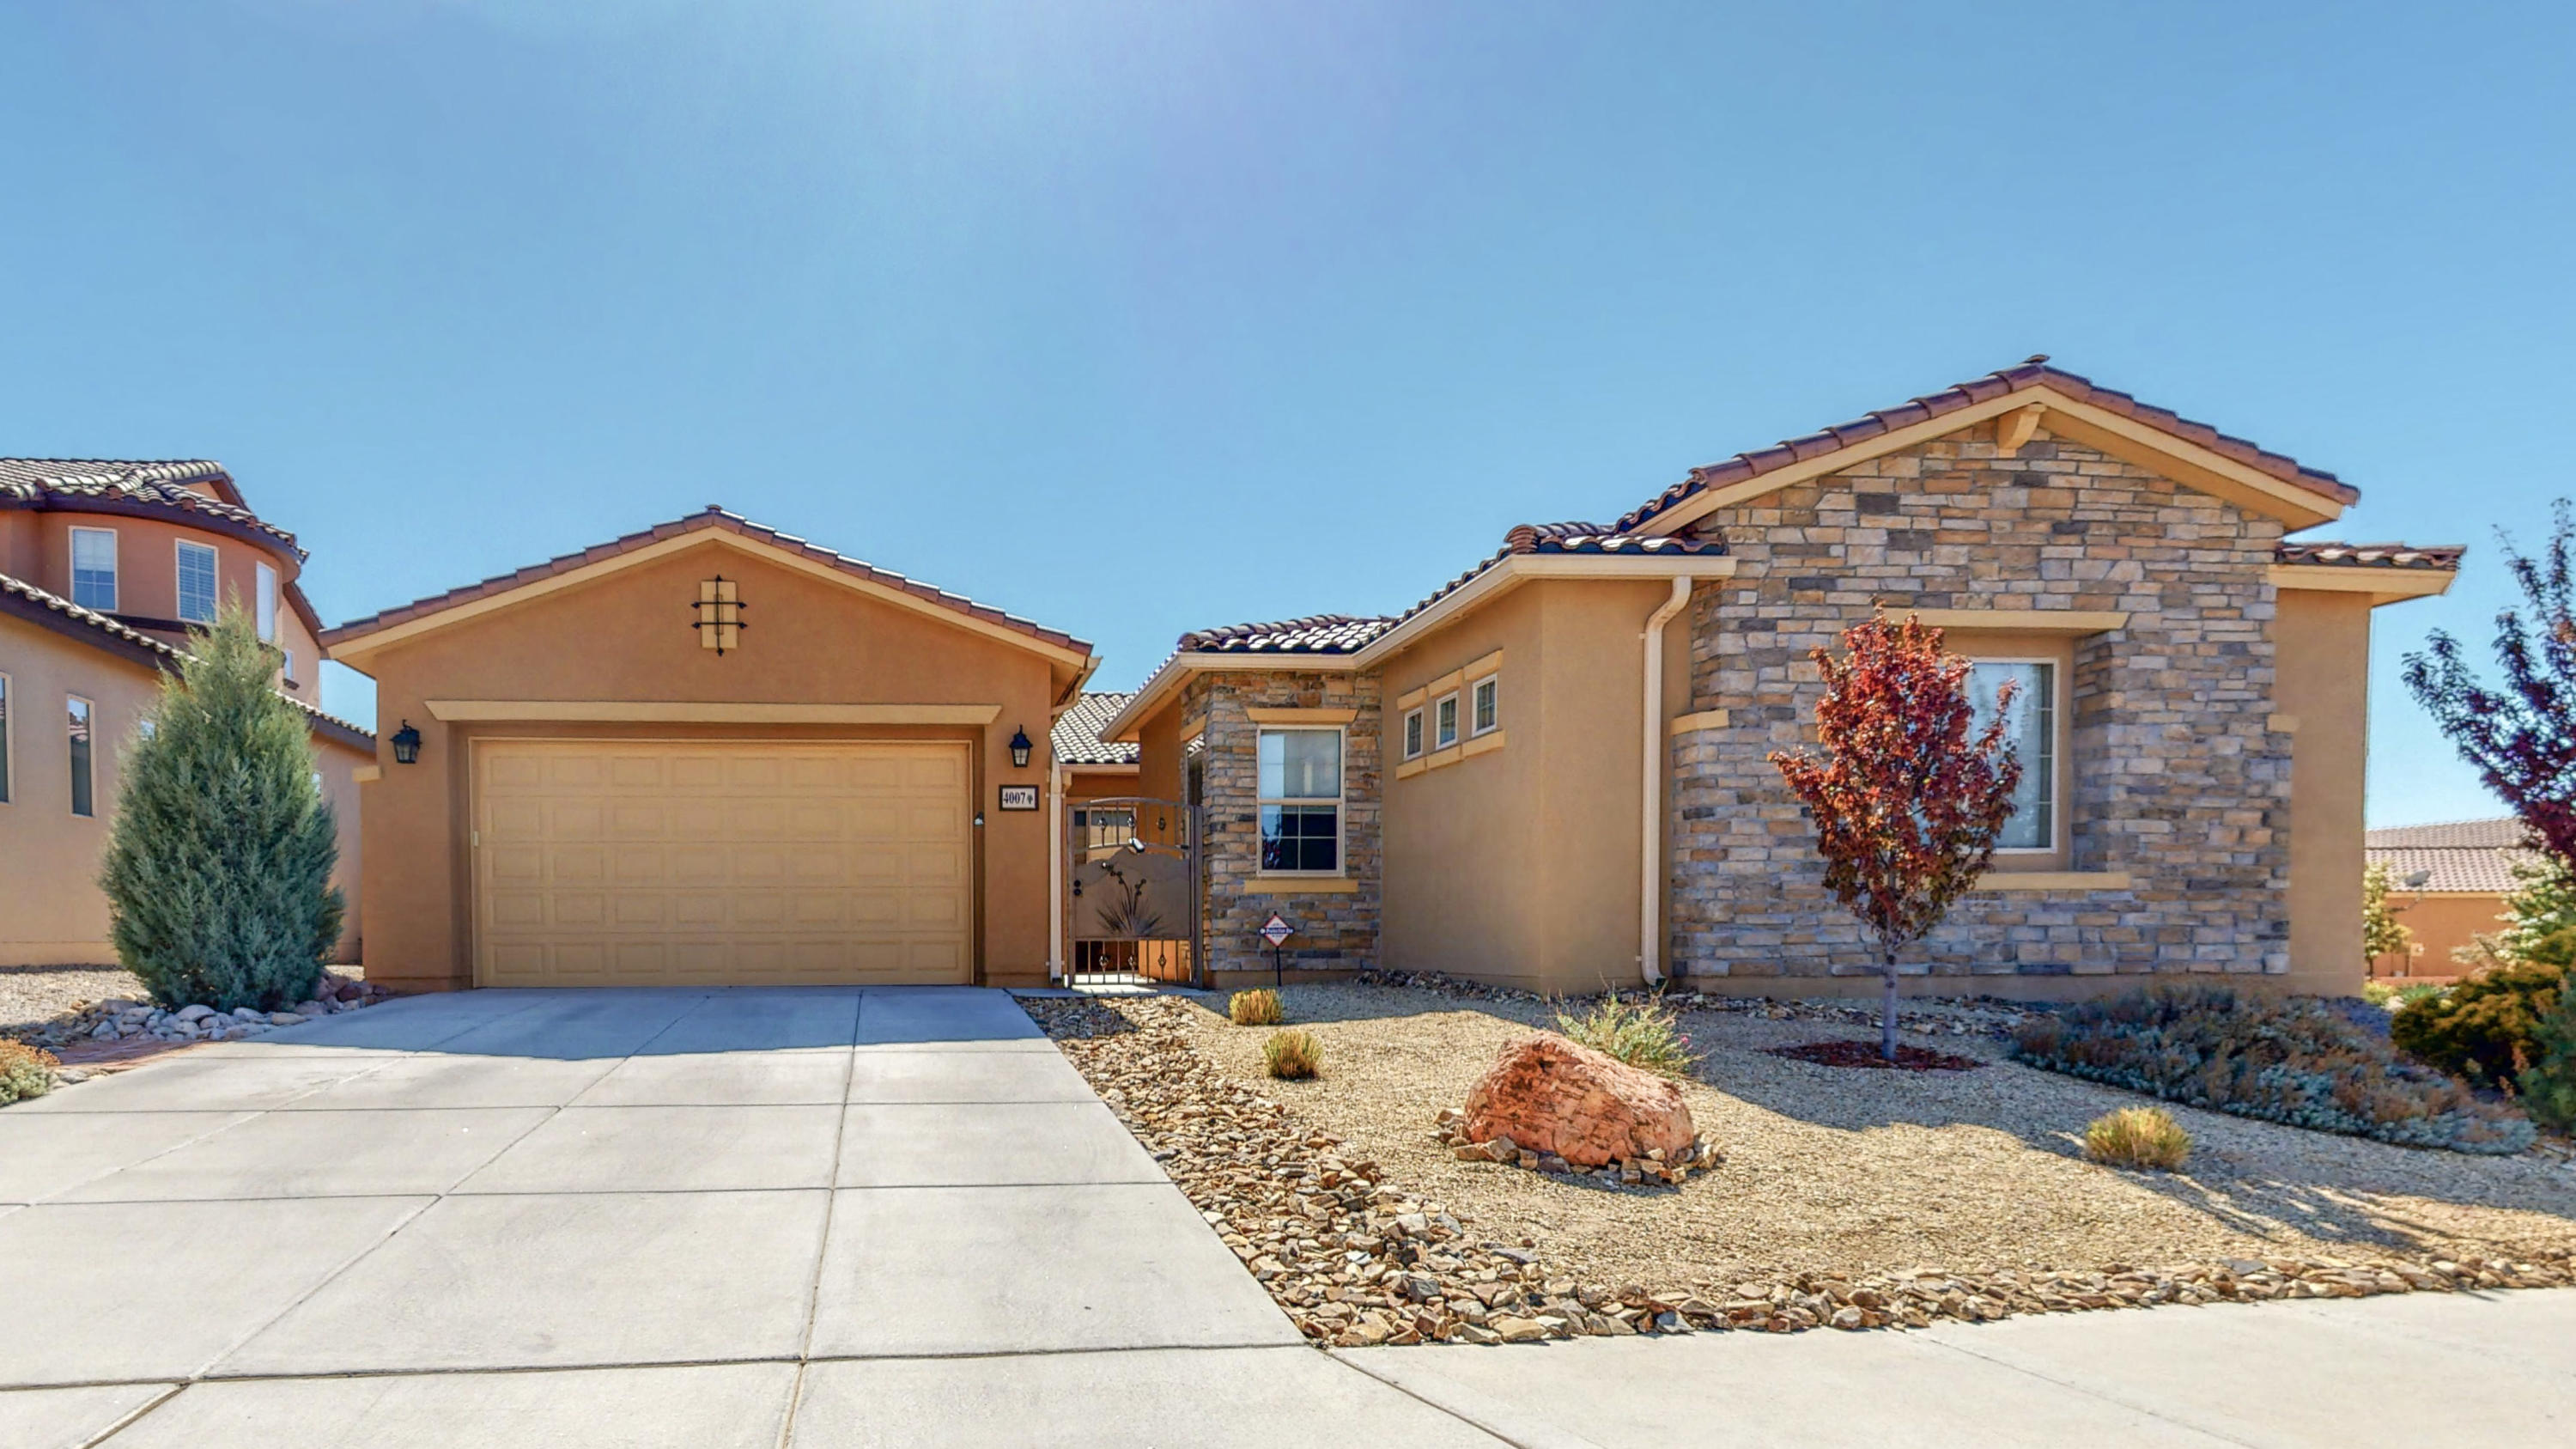 4007 PLAZA COLINA Lane NE Property Photo - Rio Rancho, NM real estate listing